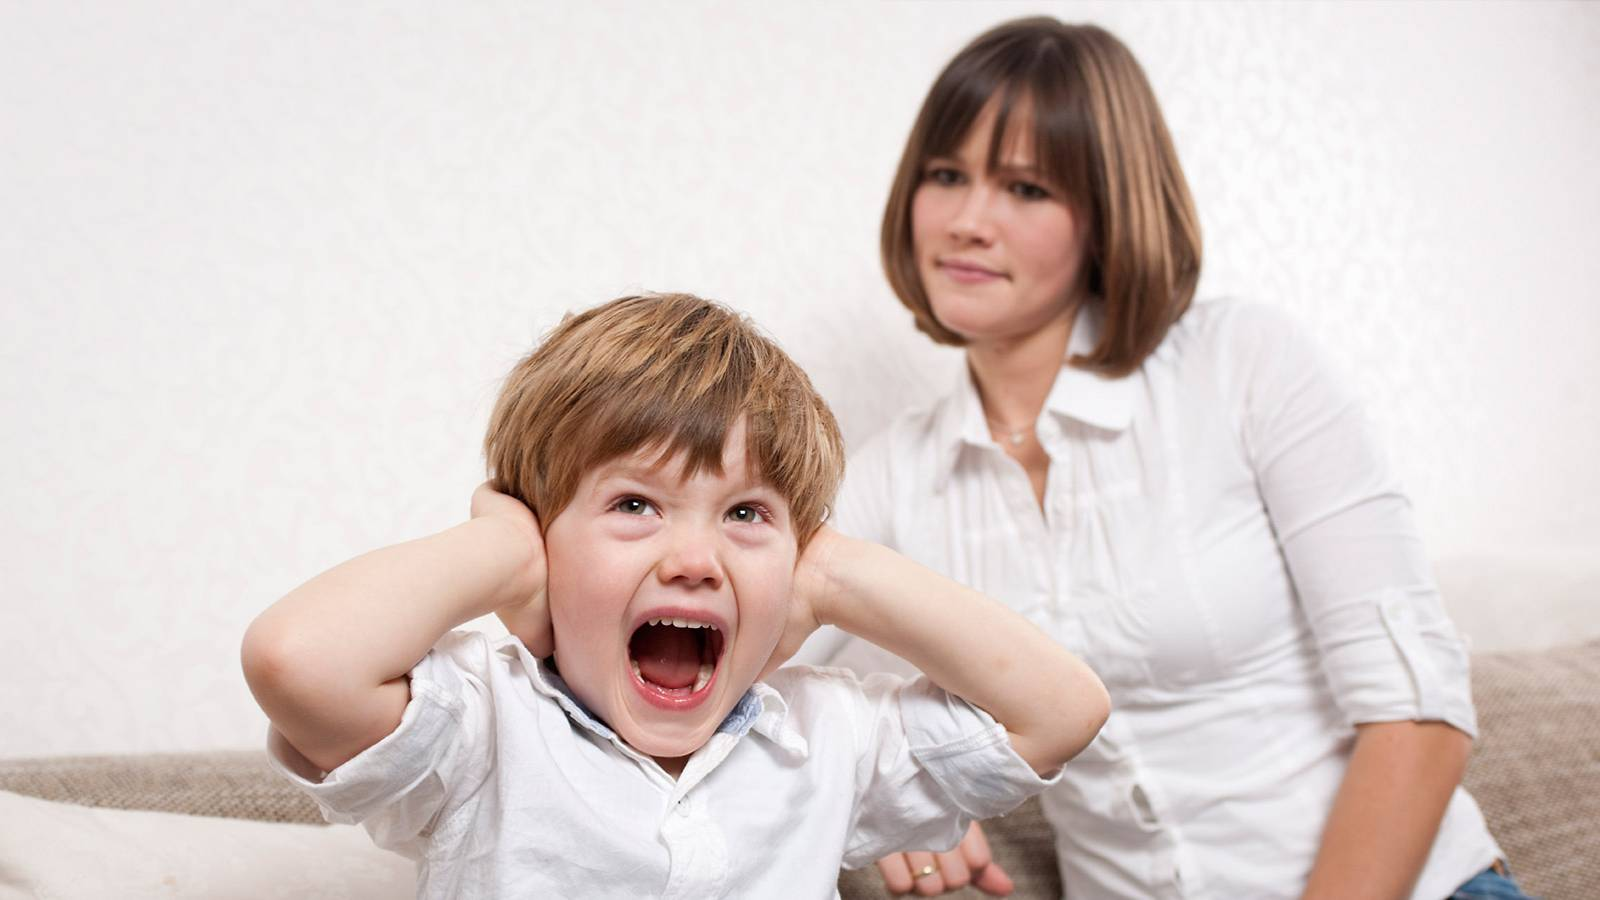 Tots-Tot-tantrums-—-6-ways-to-avoid-them